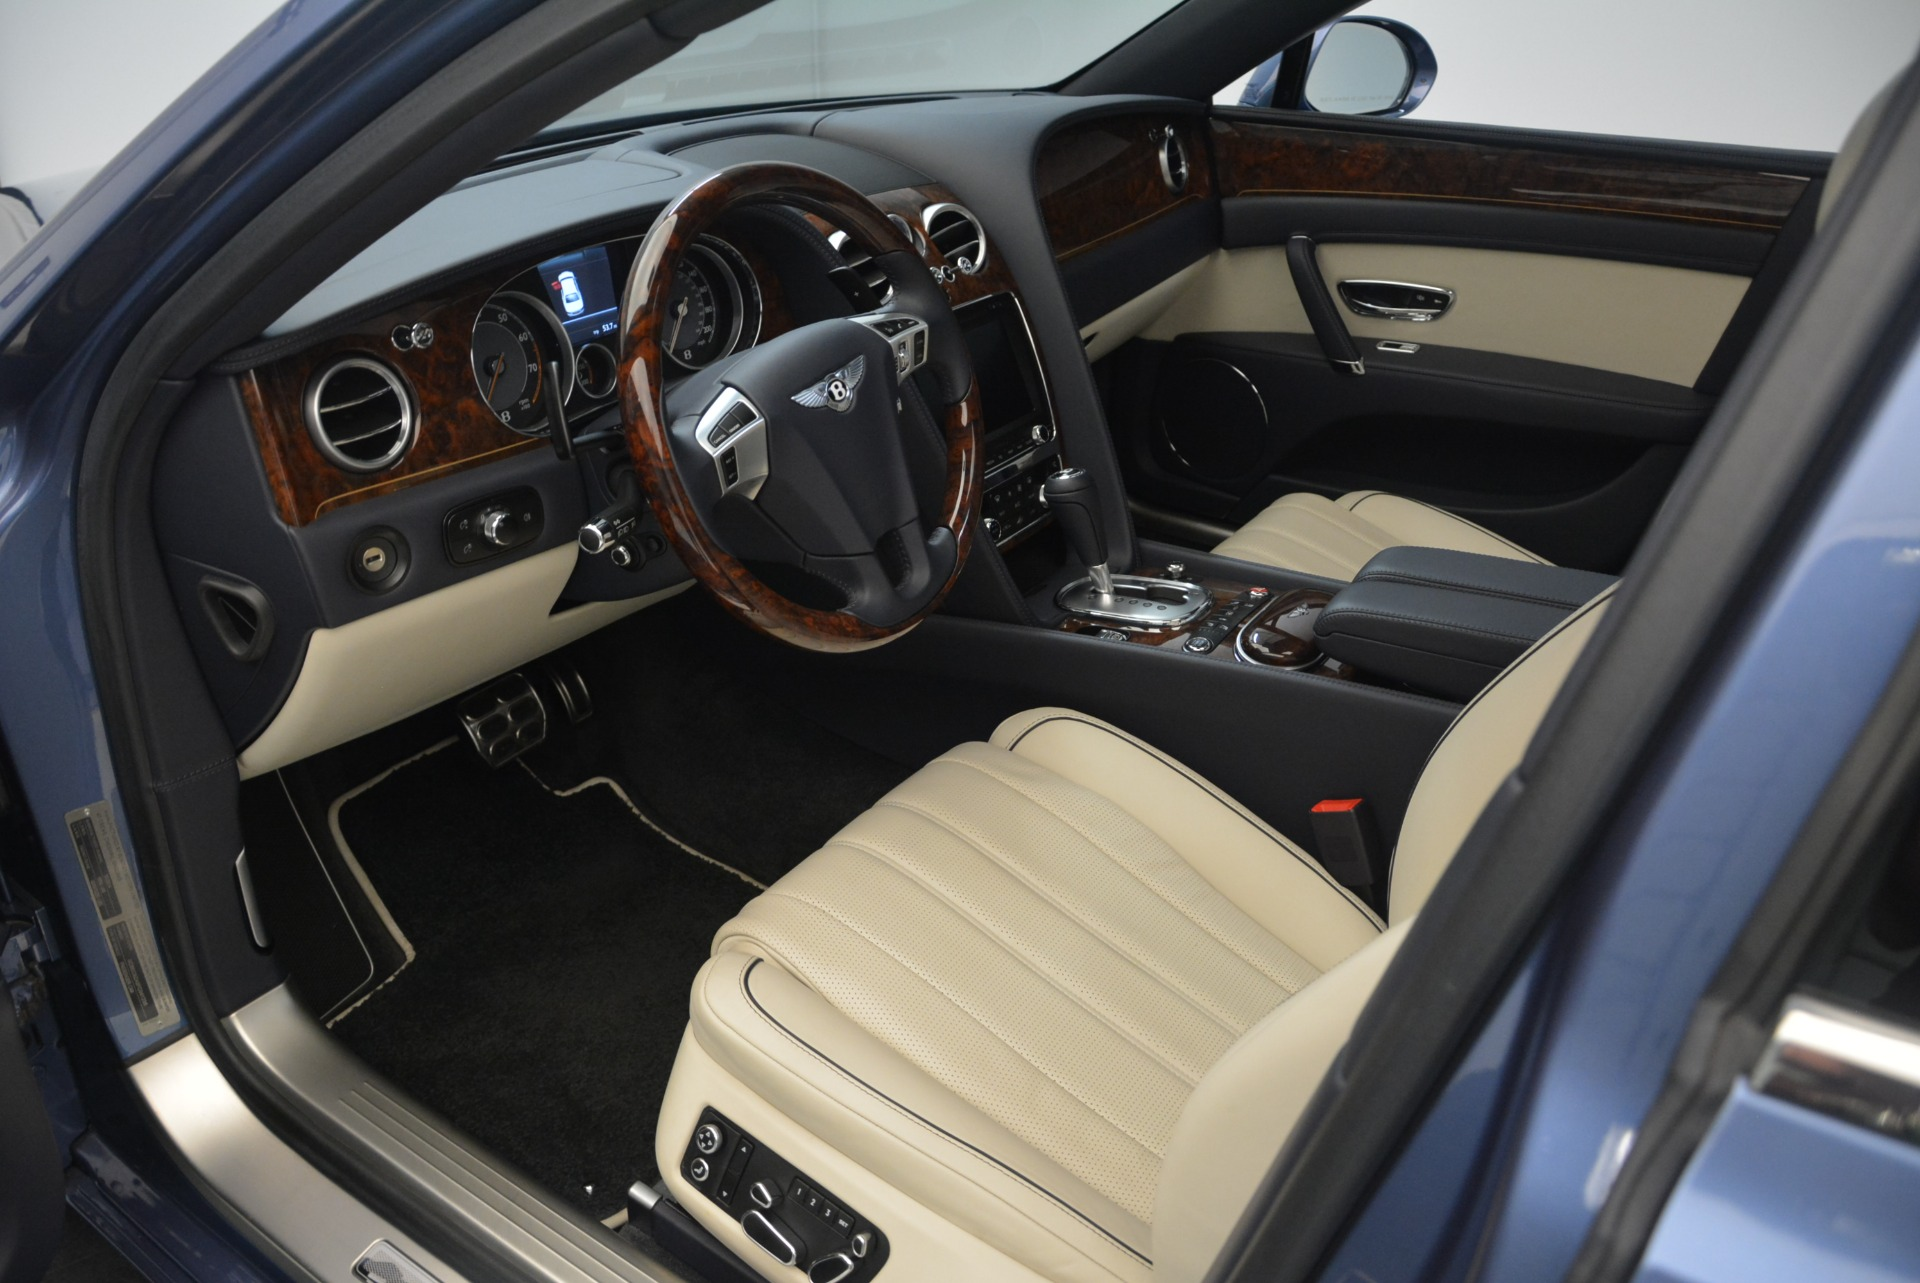 Used 2015 Bentley Flying Spur W12 For Sale In Greenwich, CT. Alfa Romeo of Greenwich, 7375 2339_p19